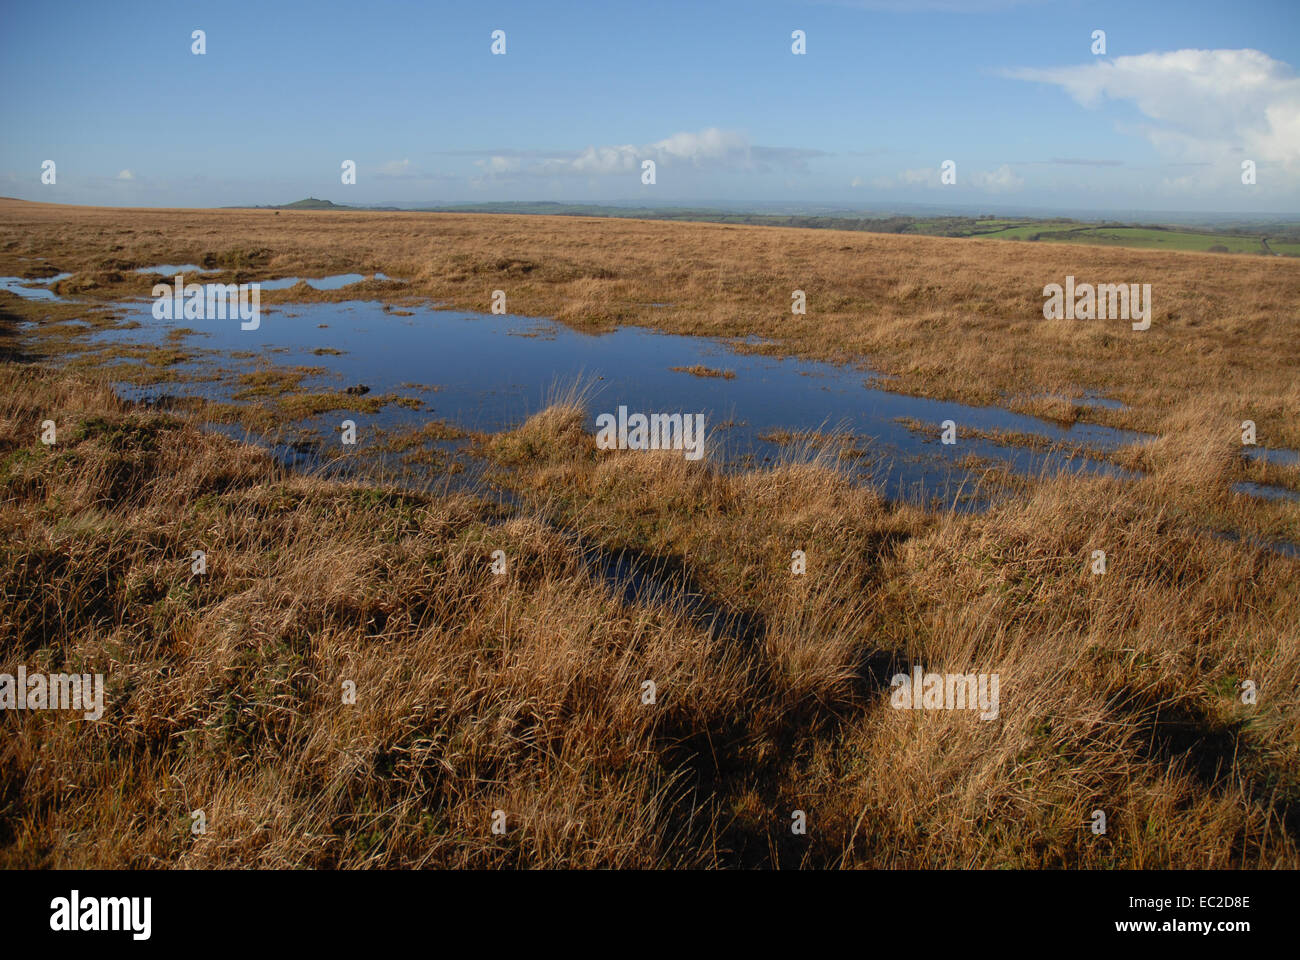 Autumn view of blanket bog with moss and grasses, Dartmoor National Park, Devon, England Stock Photo